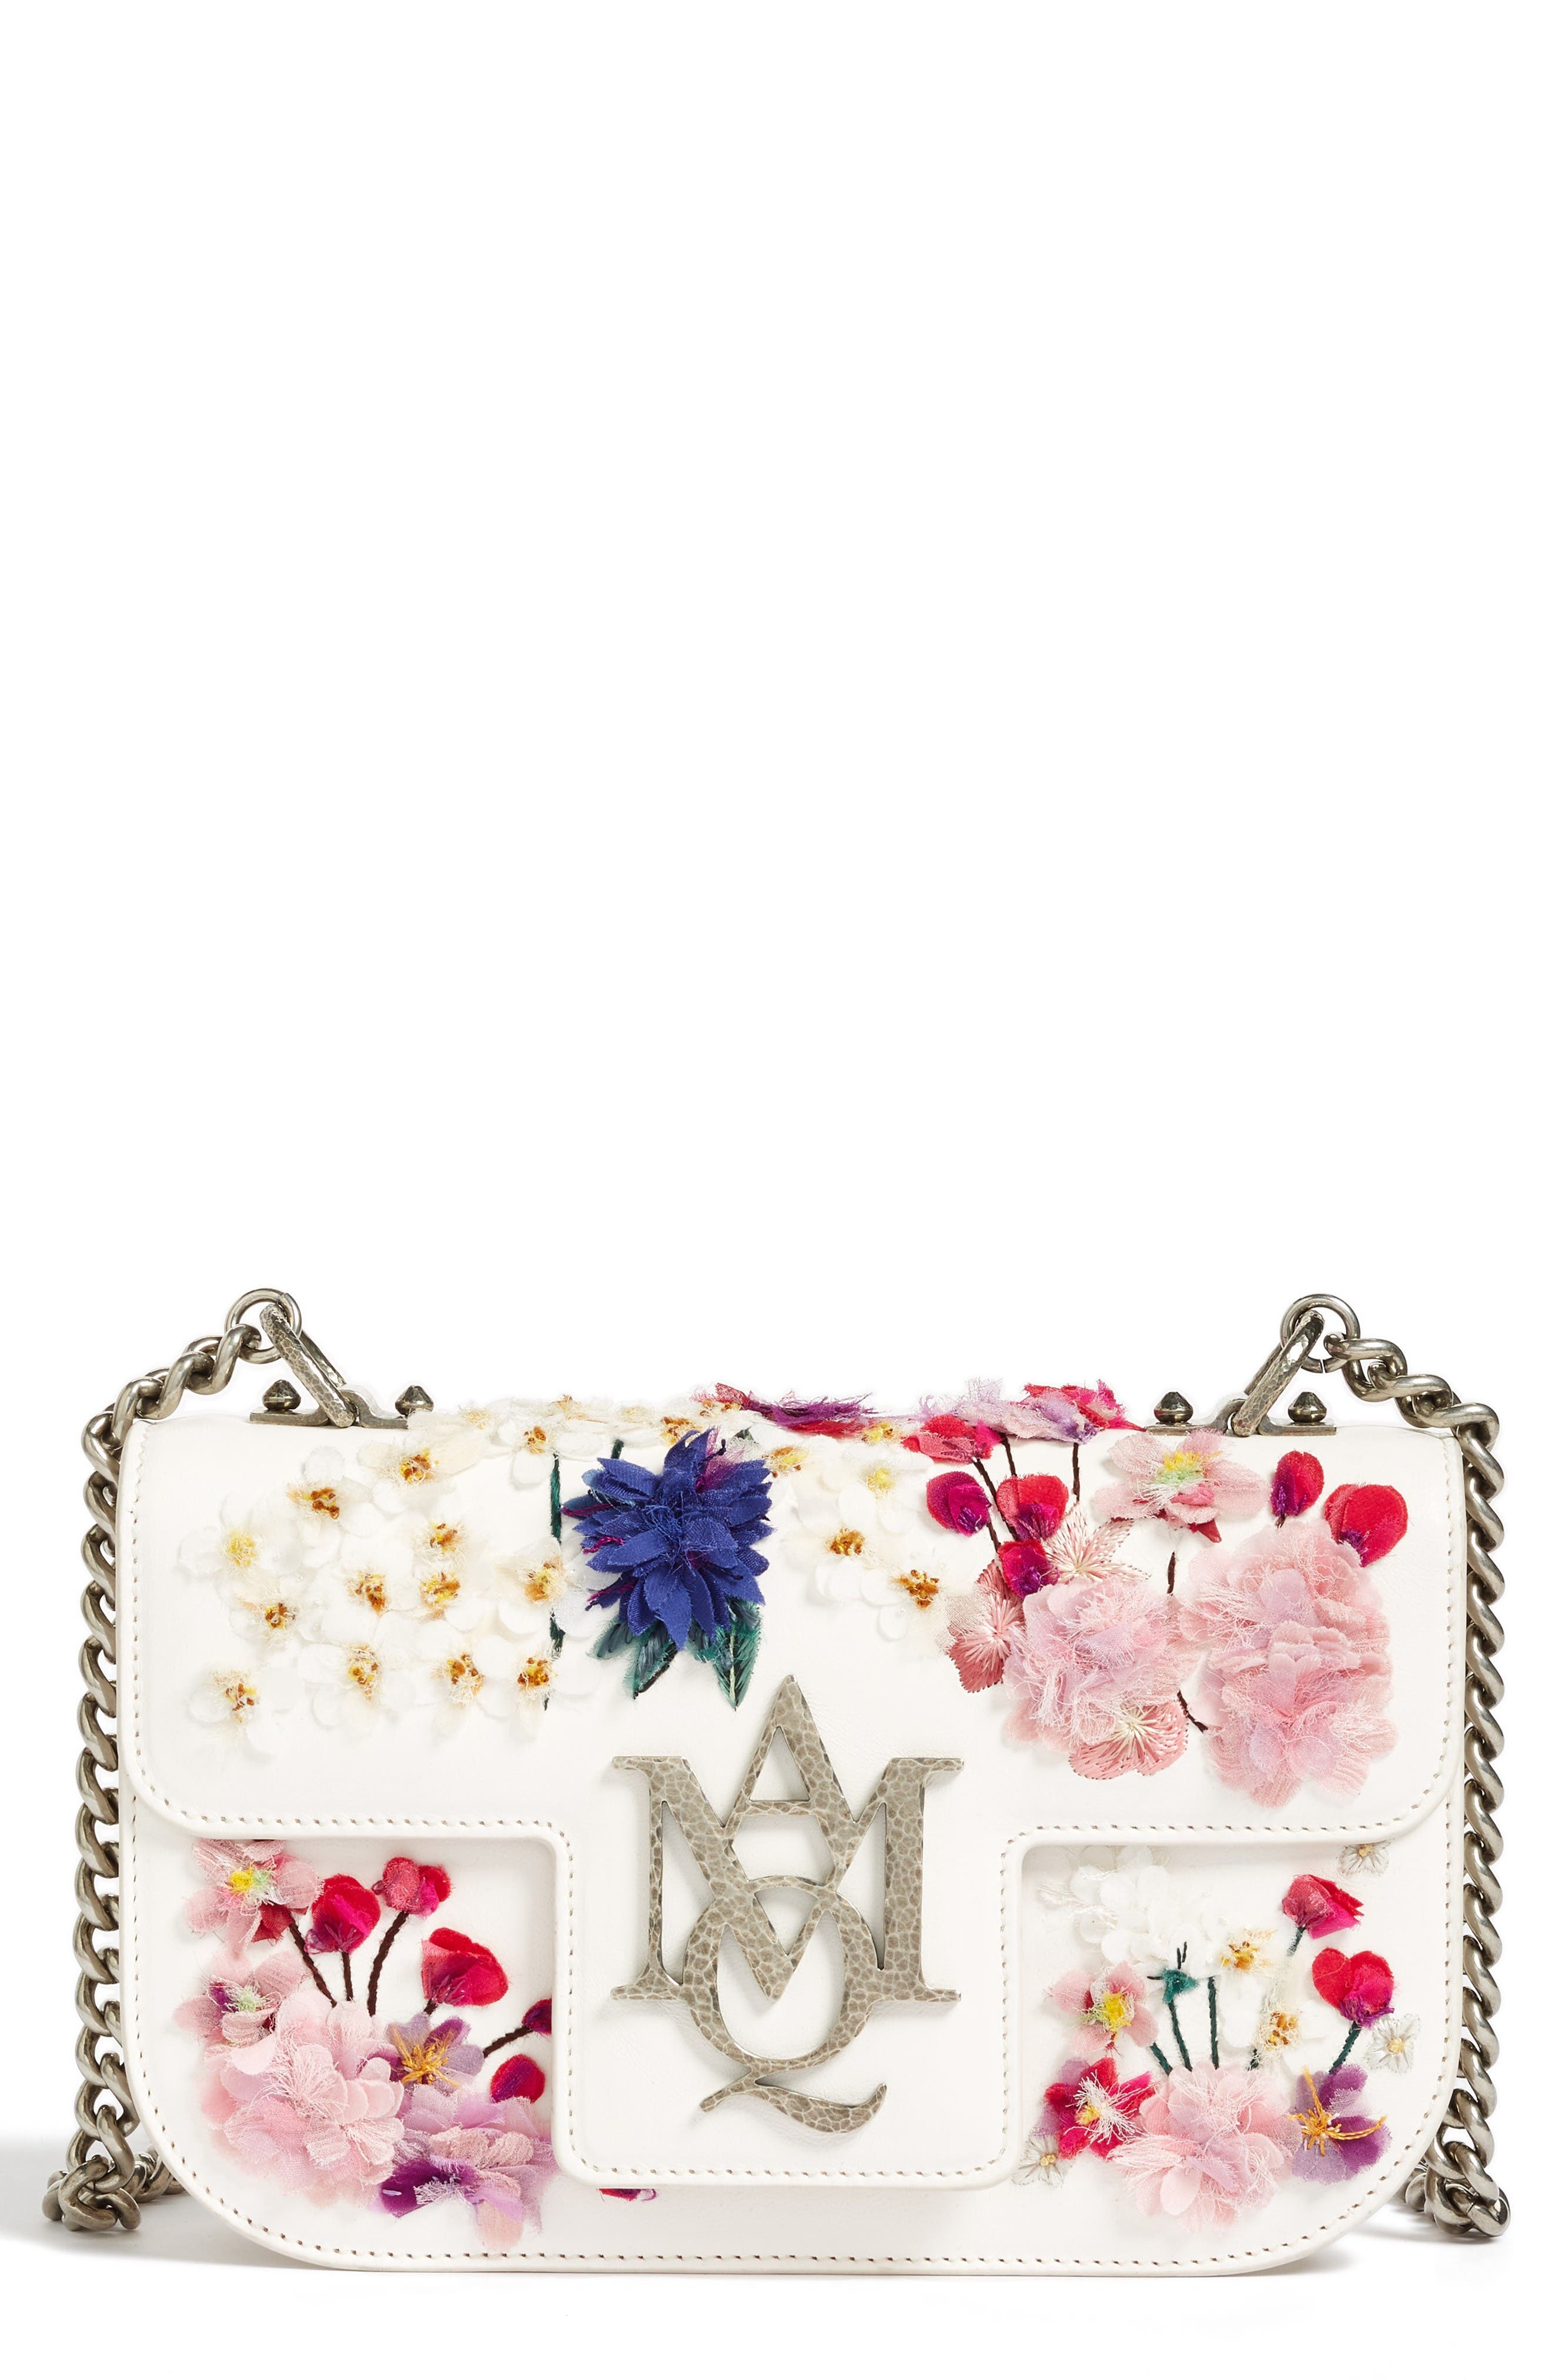 Alternate Image 1 Selected - Alexander McQueen Small Insignia Leather Shoulder Bag